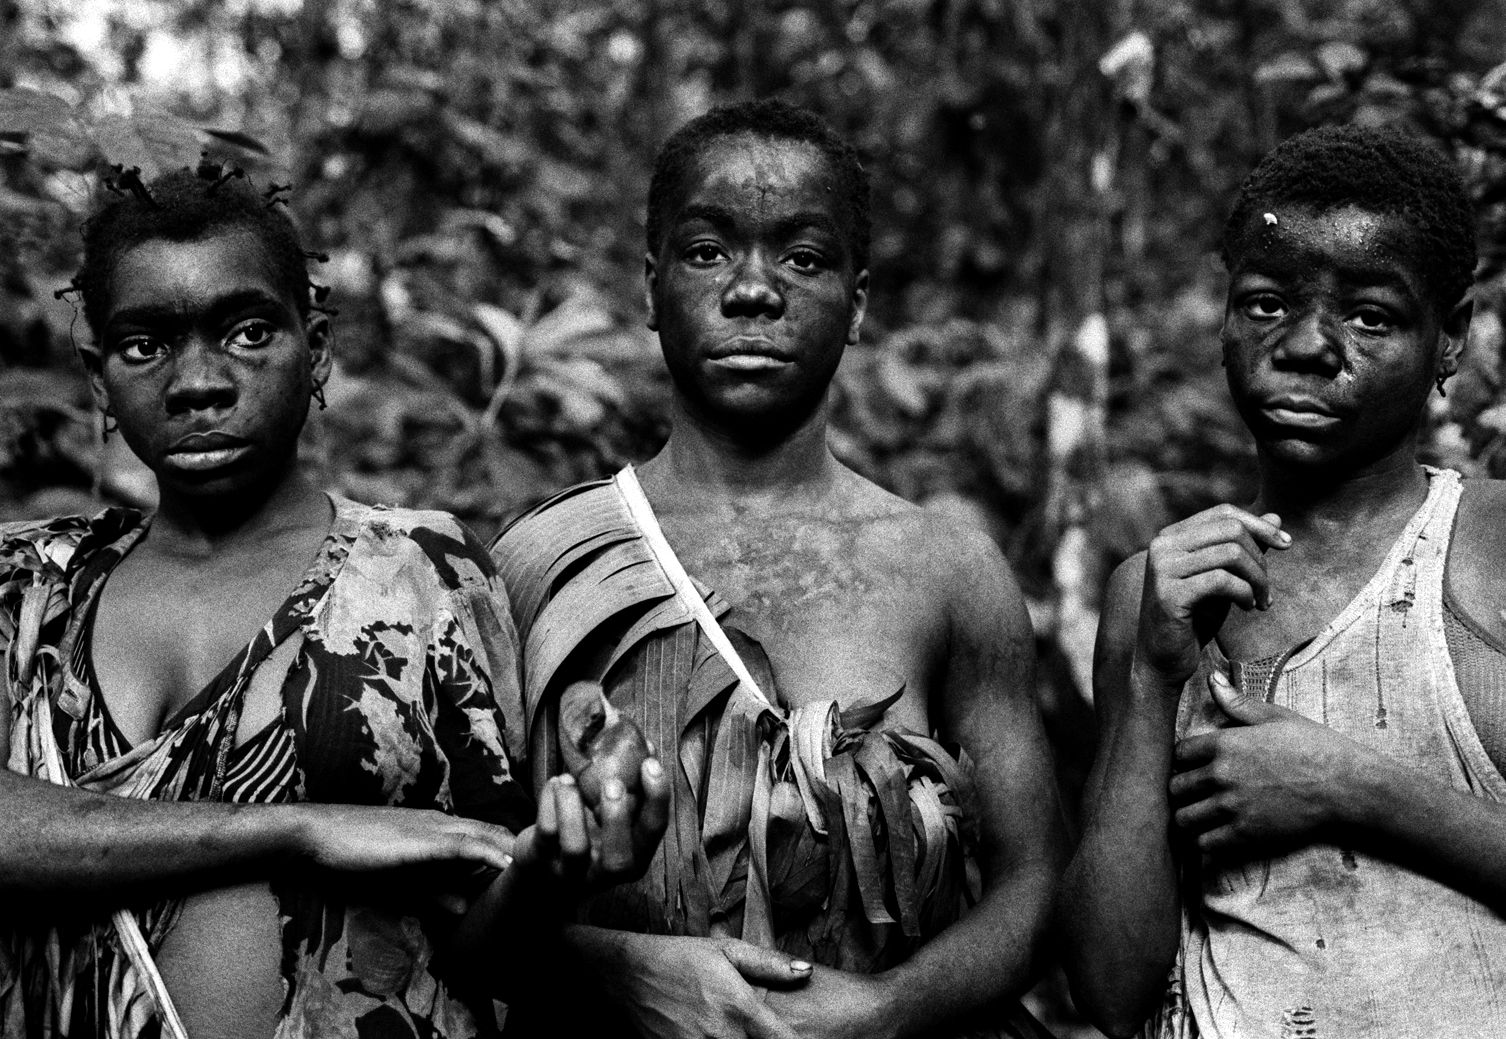 Portrait of 3 pygmy girls, Equatorial northern province, DRCongo 2004